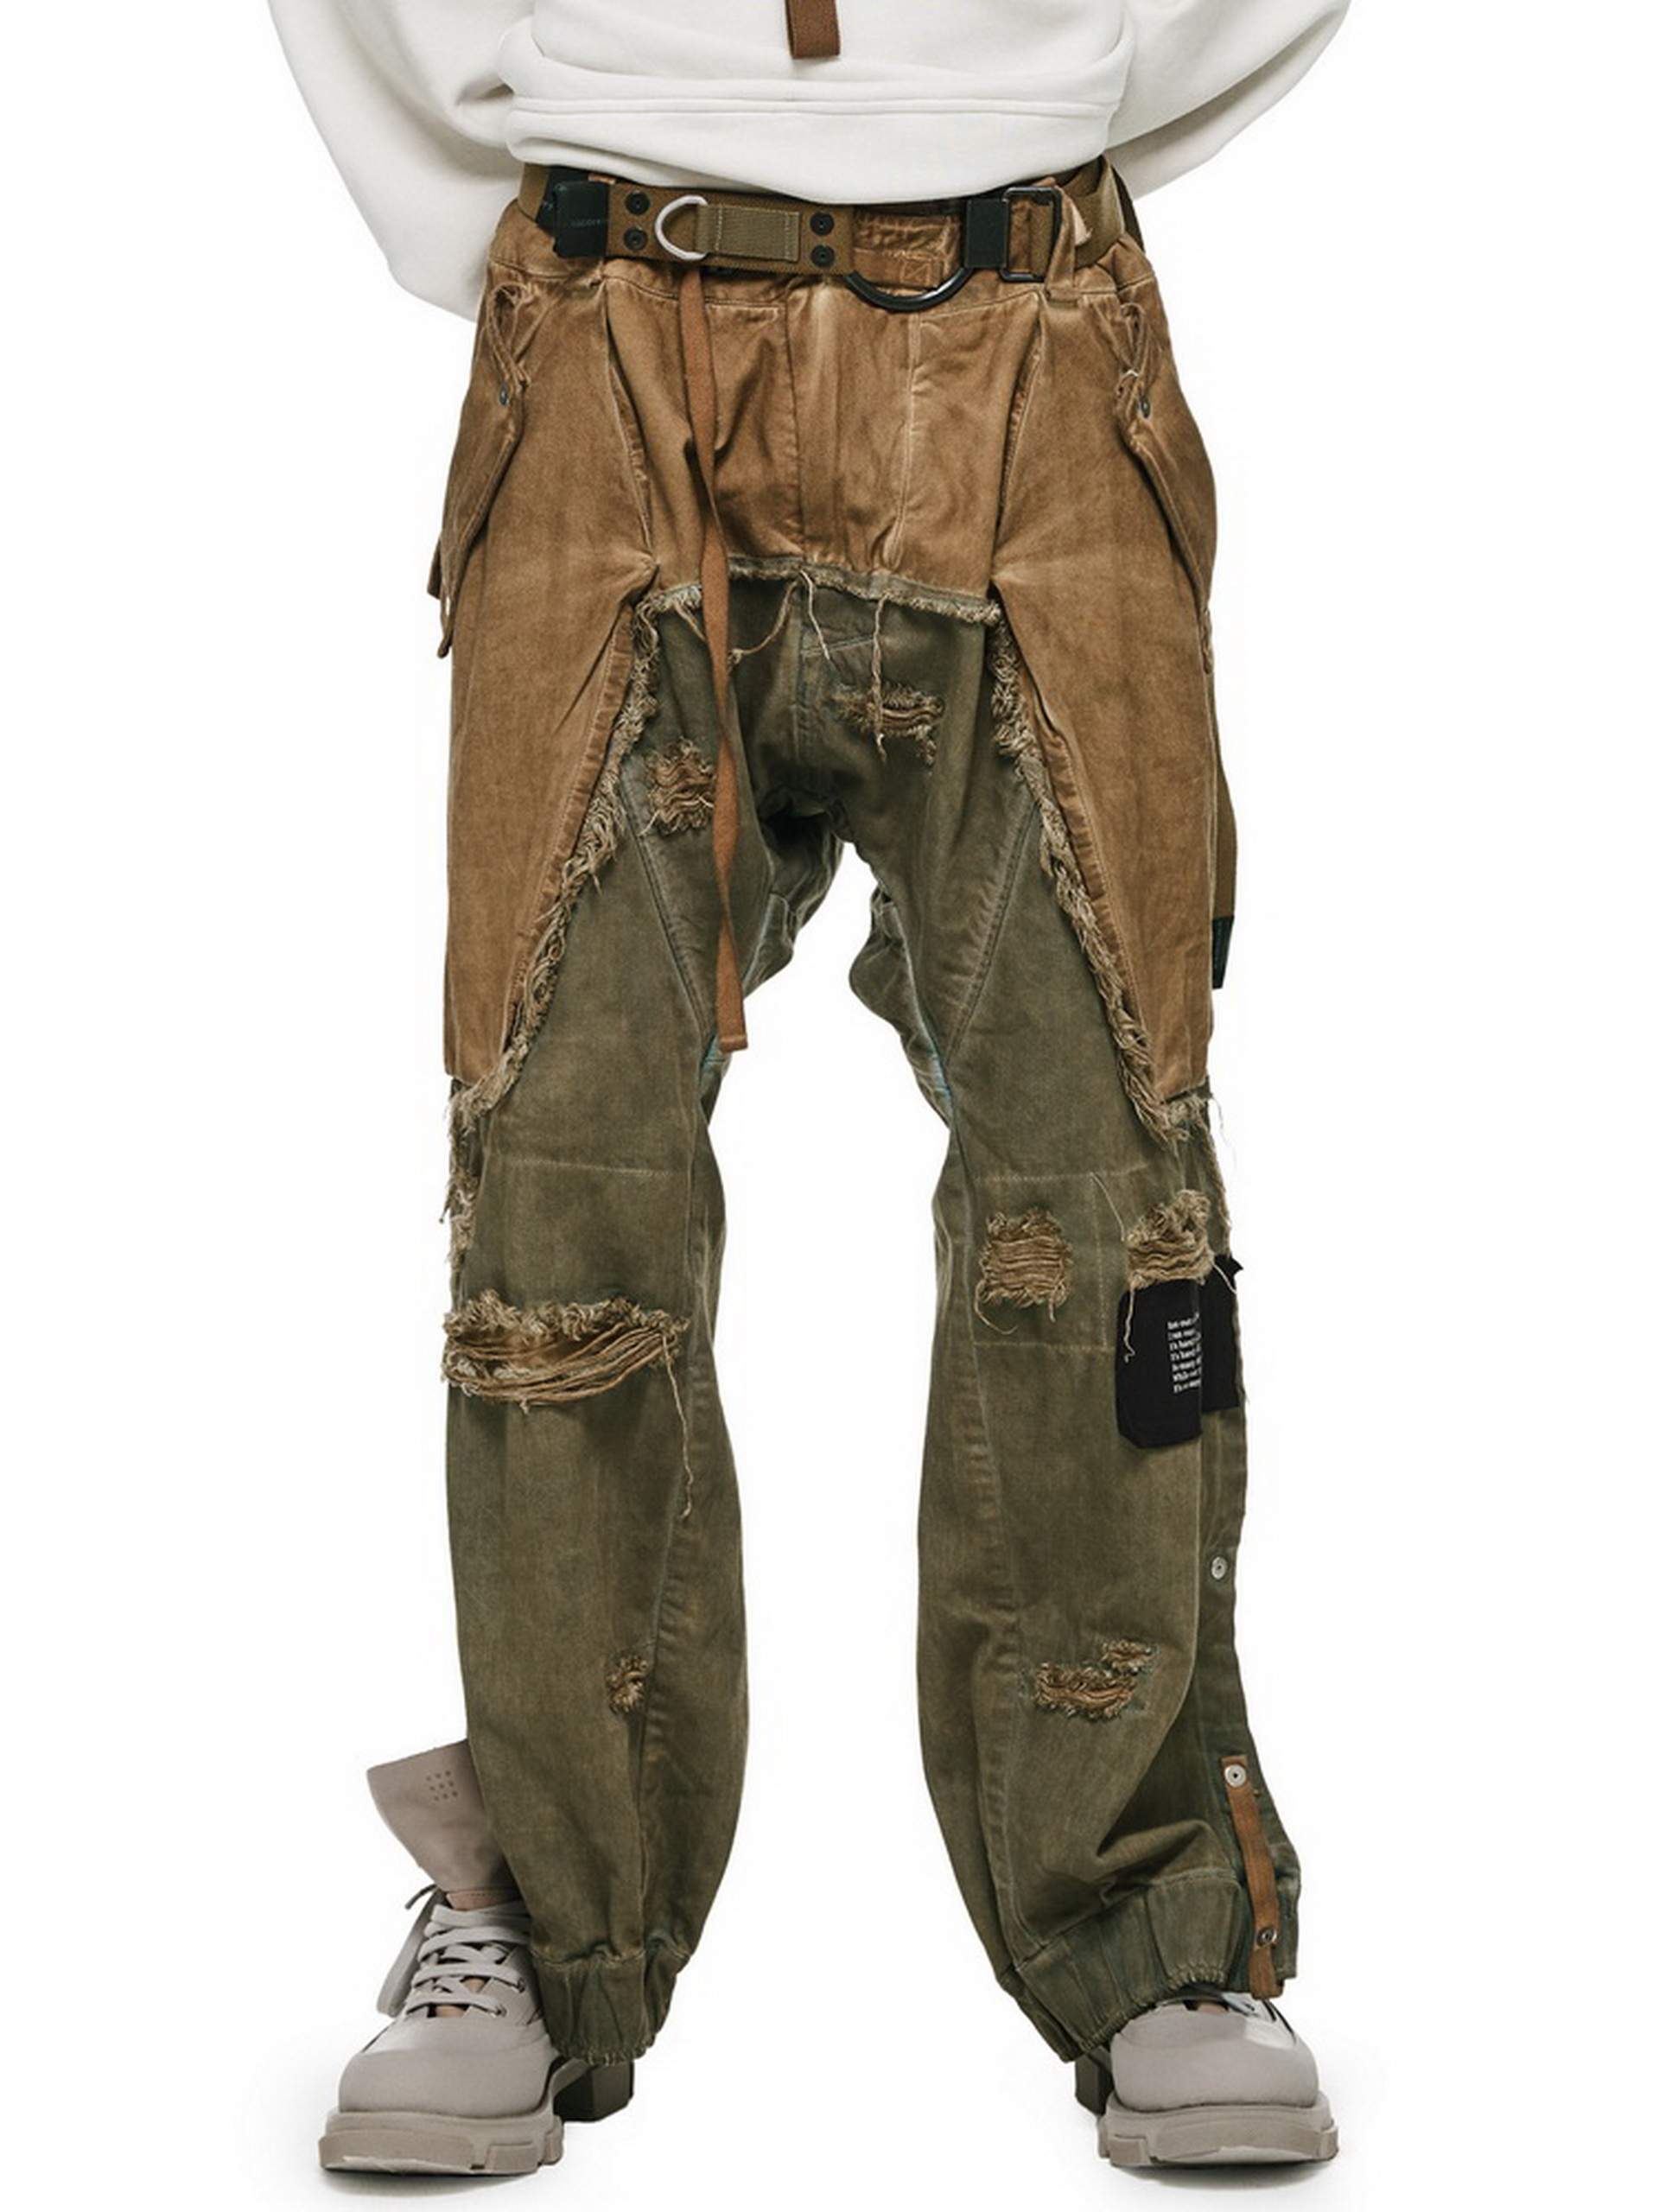 HAMCUS/RVEN/2-toned overdyed cowboy chaps pants DH